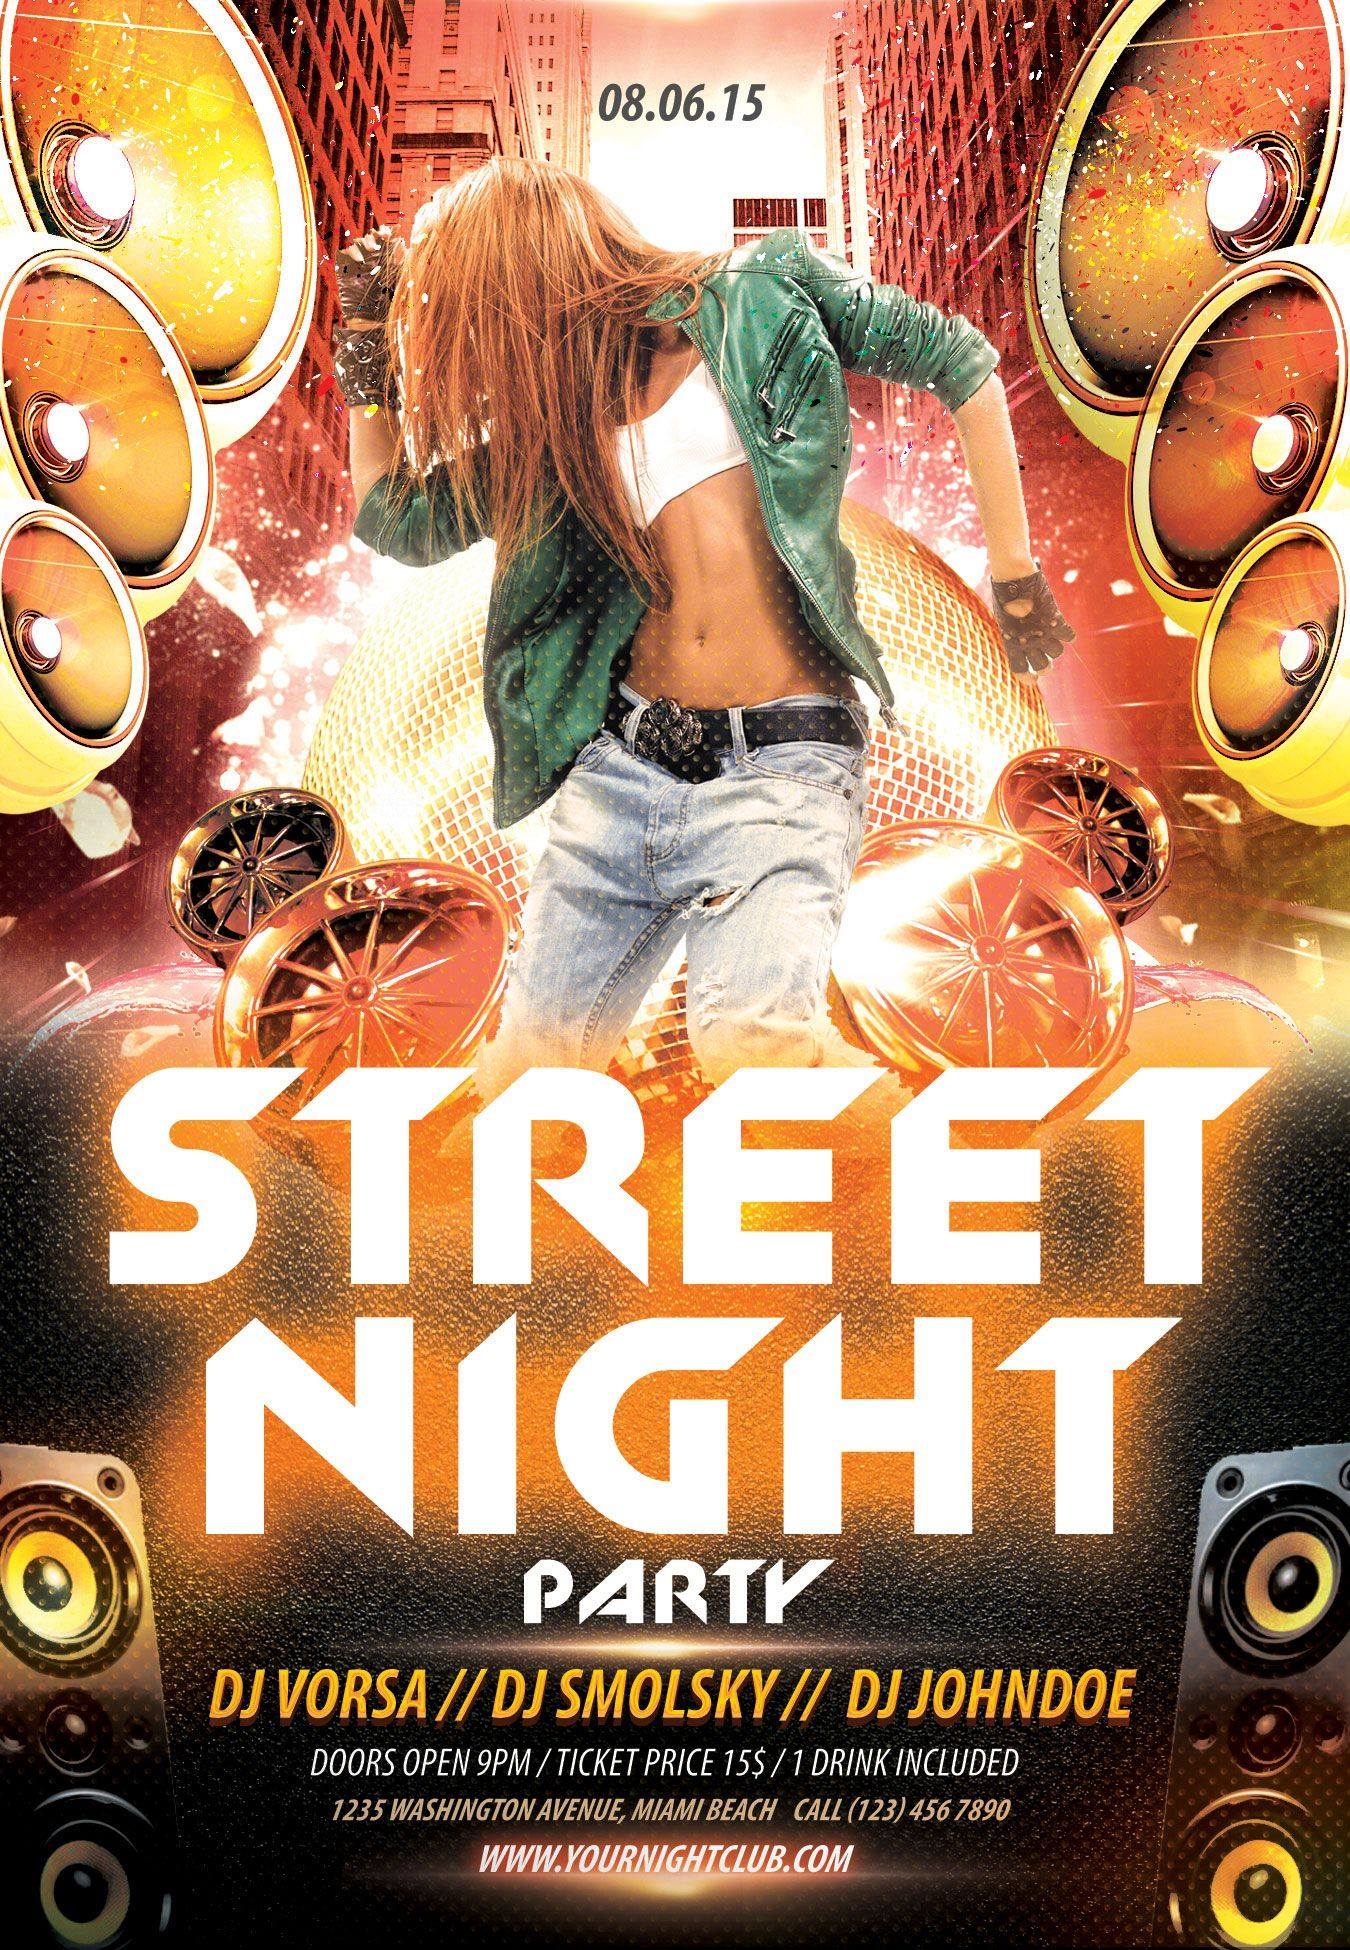 street night party flyer psd template by styleflyer com is street night party flyer psd template by styleflyer com is the best way to